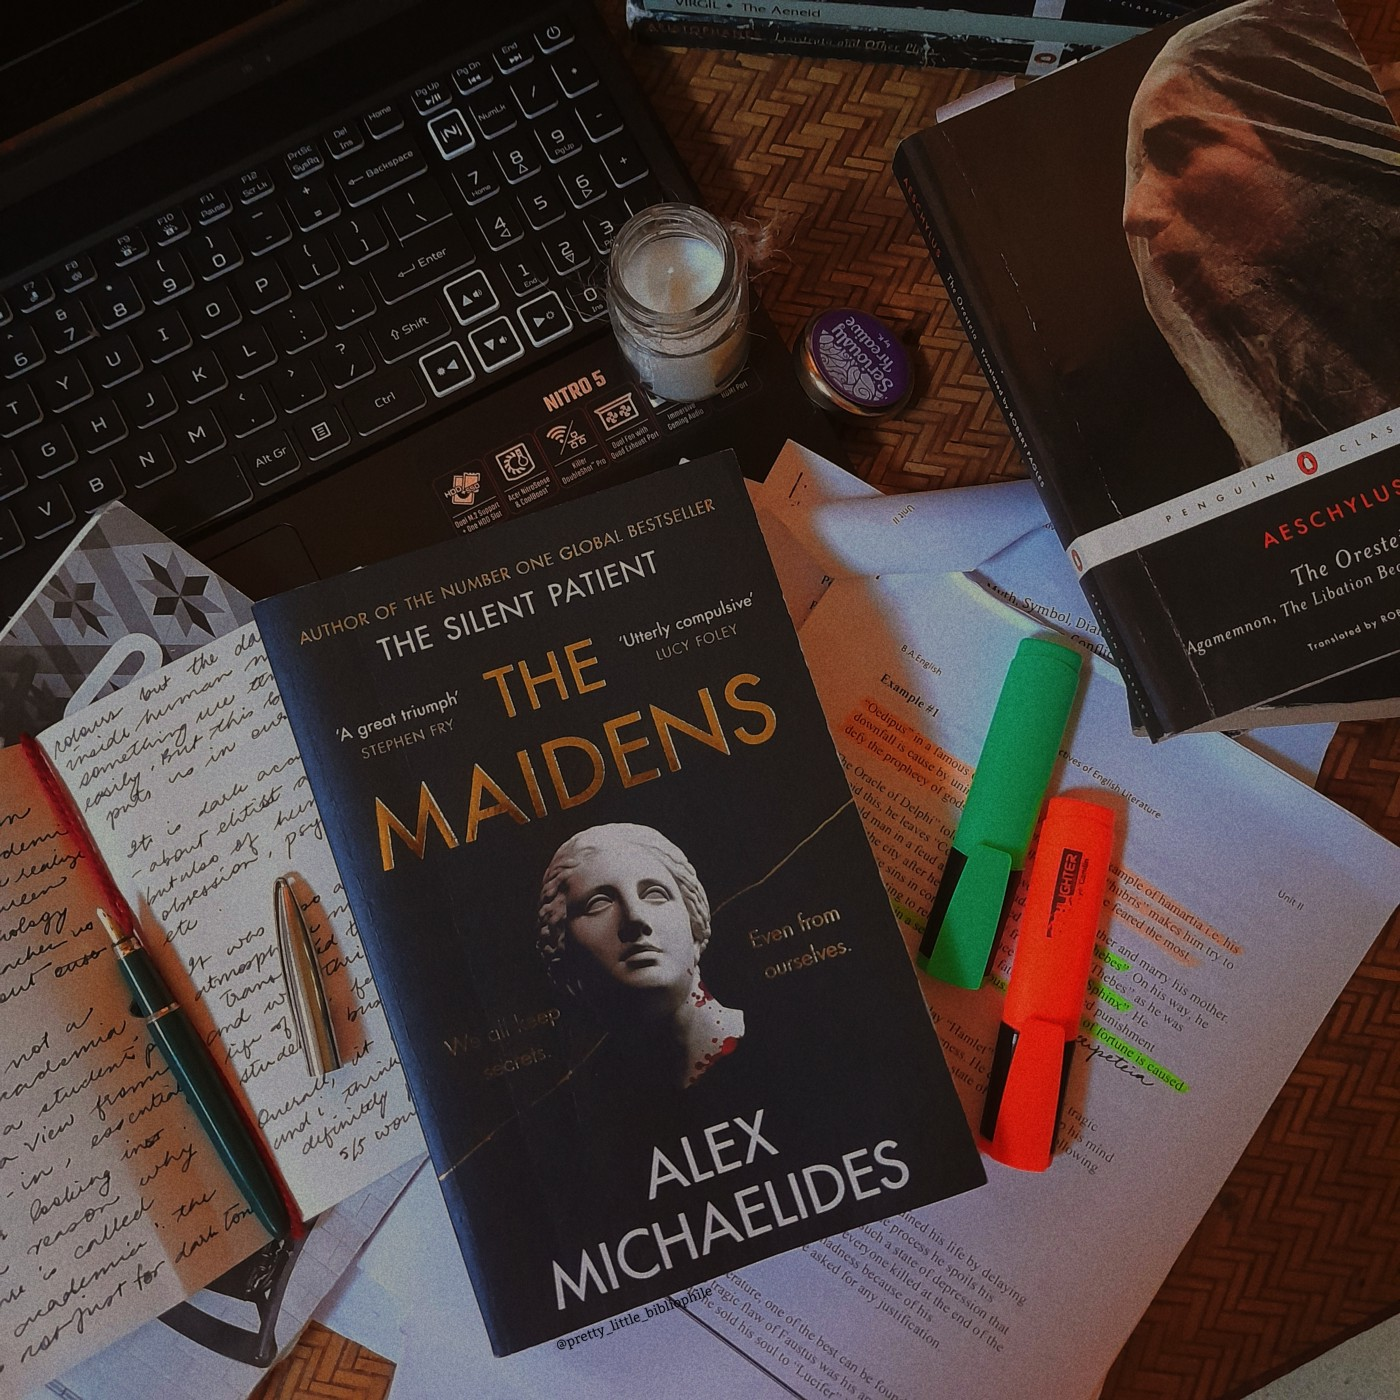 'The Maidens' on a cluttered desk, with an open notebook, a laptop, and other books around. The cover is black with gold writing and a plaster bust in the centre.